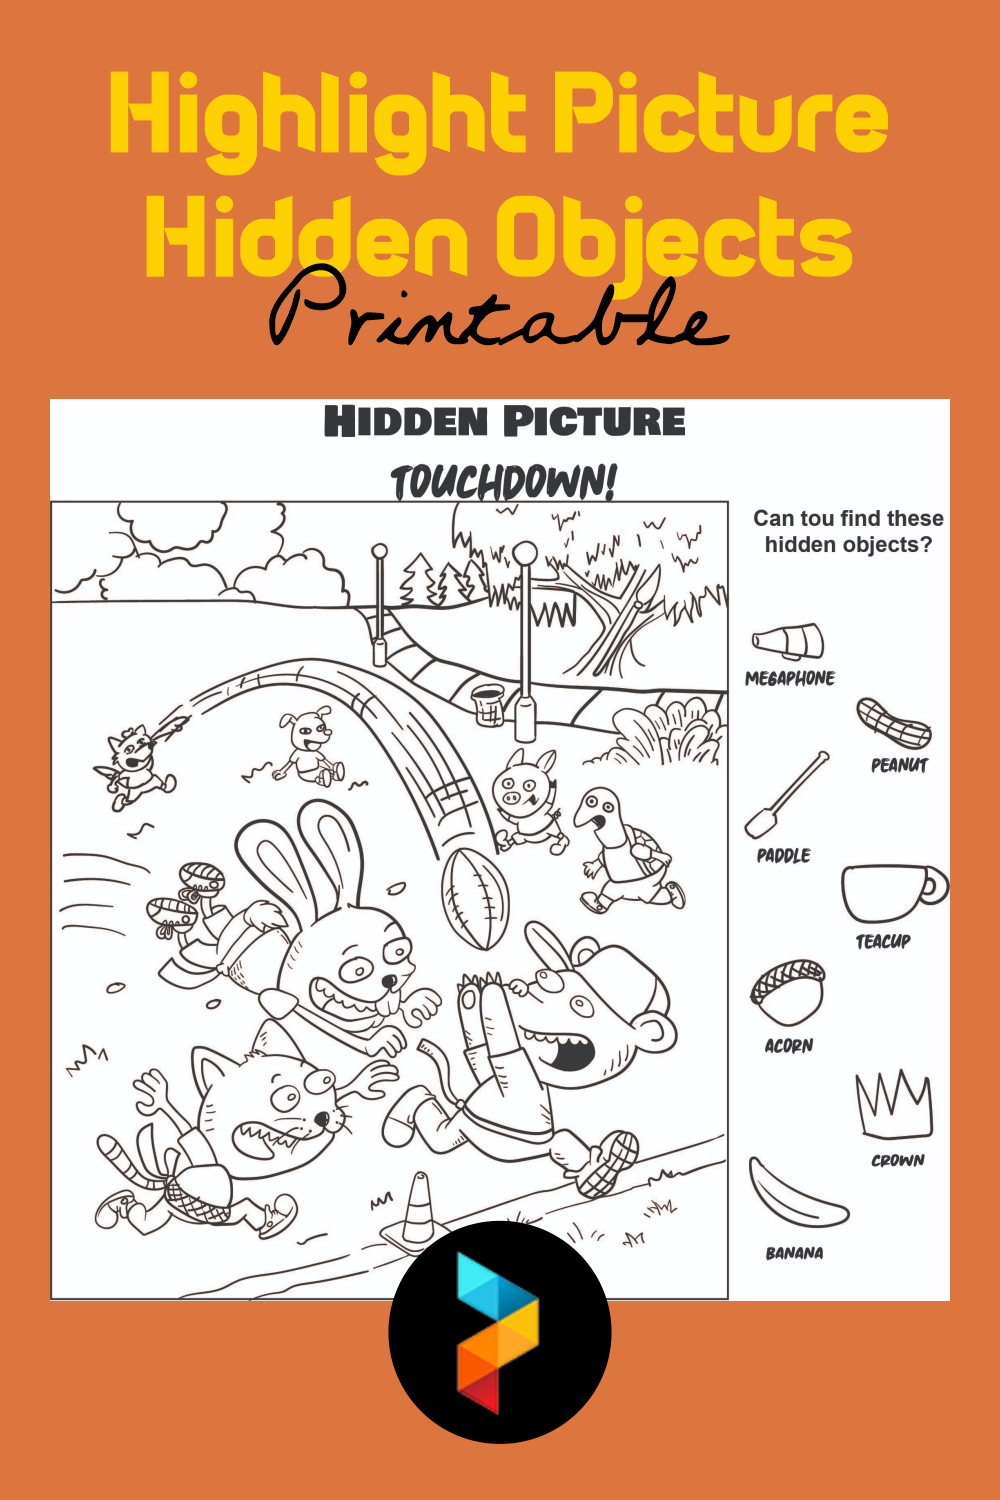 Highlight Picture Hidden Objects Printable